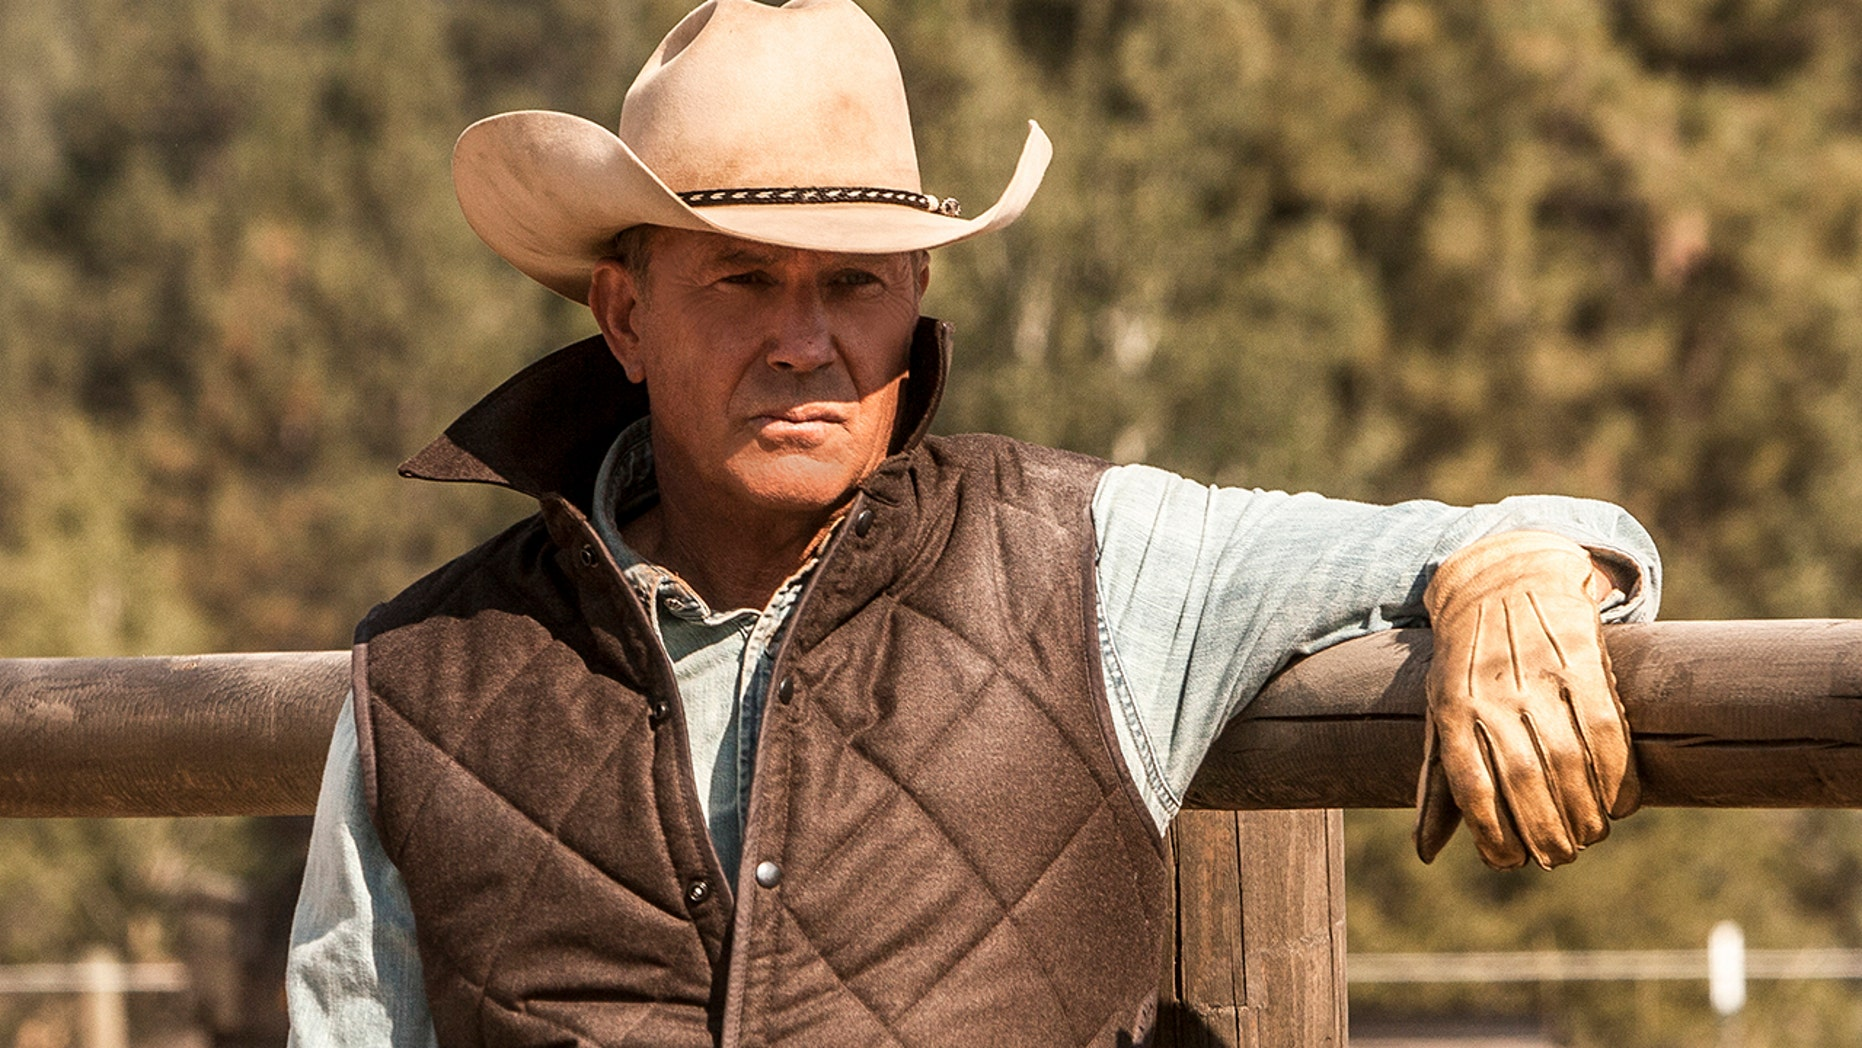 'Yellowstone' starring Kevin Costner has been accused of misusing animal carcasses by PETA.